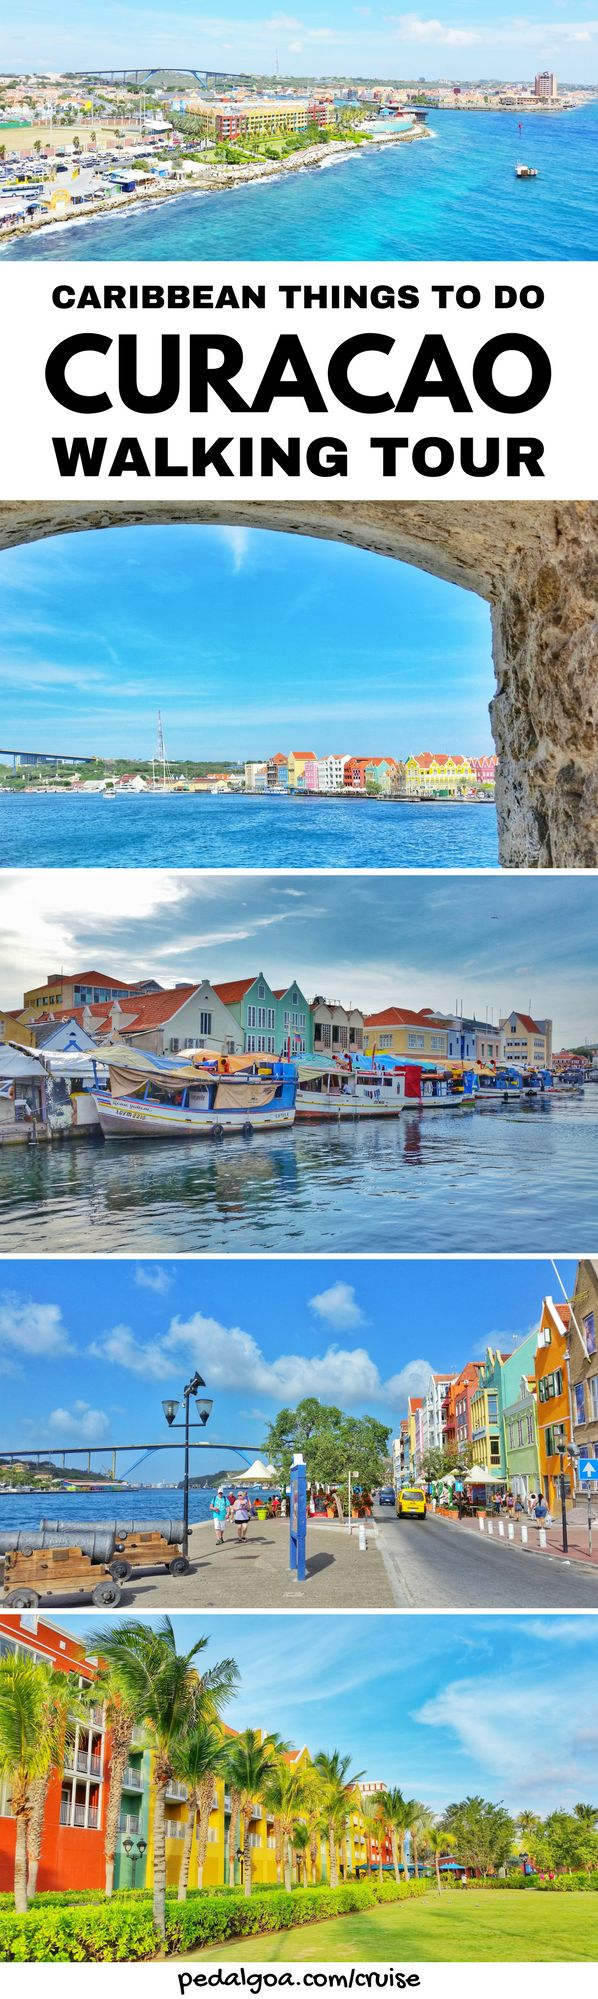 For a Caribbean cruise without excursions, things to do in Curacao, near Curacao cruise port. Outdoor shopping mall, fort to get to downtown Willemstad with culture for more shopping and food at restaurants. Floating bridge, market, waterfront cafe. Budget-friendly activities when not taking tour. Cruise tips for southern Caribbean cruise to Curacao that might include Grand Turk, Aruba, Bonaire, Dominican Republic, or Barbados too. Think what to wear, what to pack.. #cruise #cruisetips